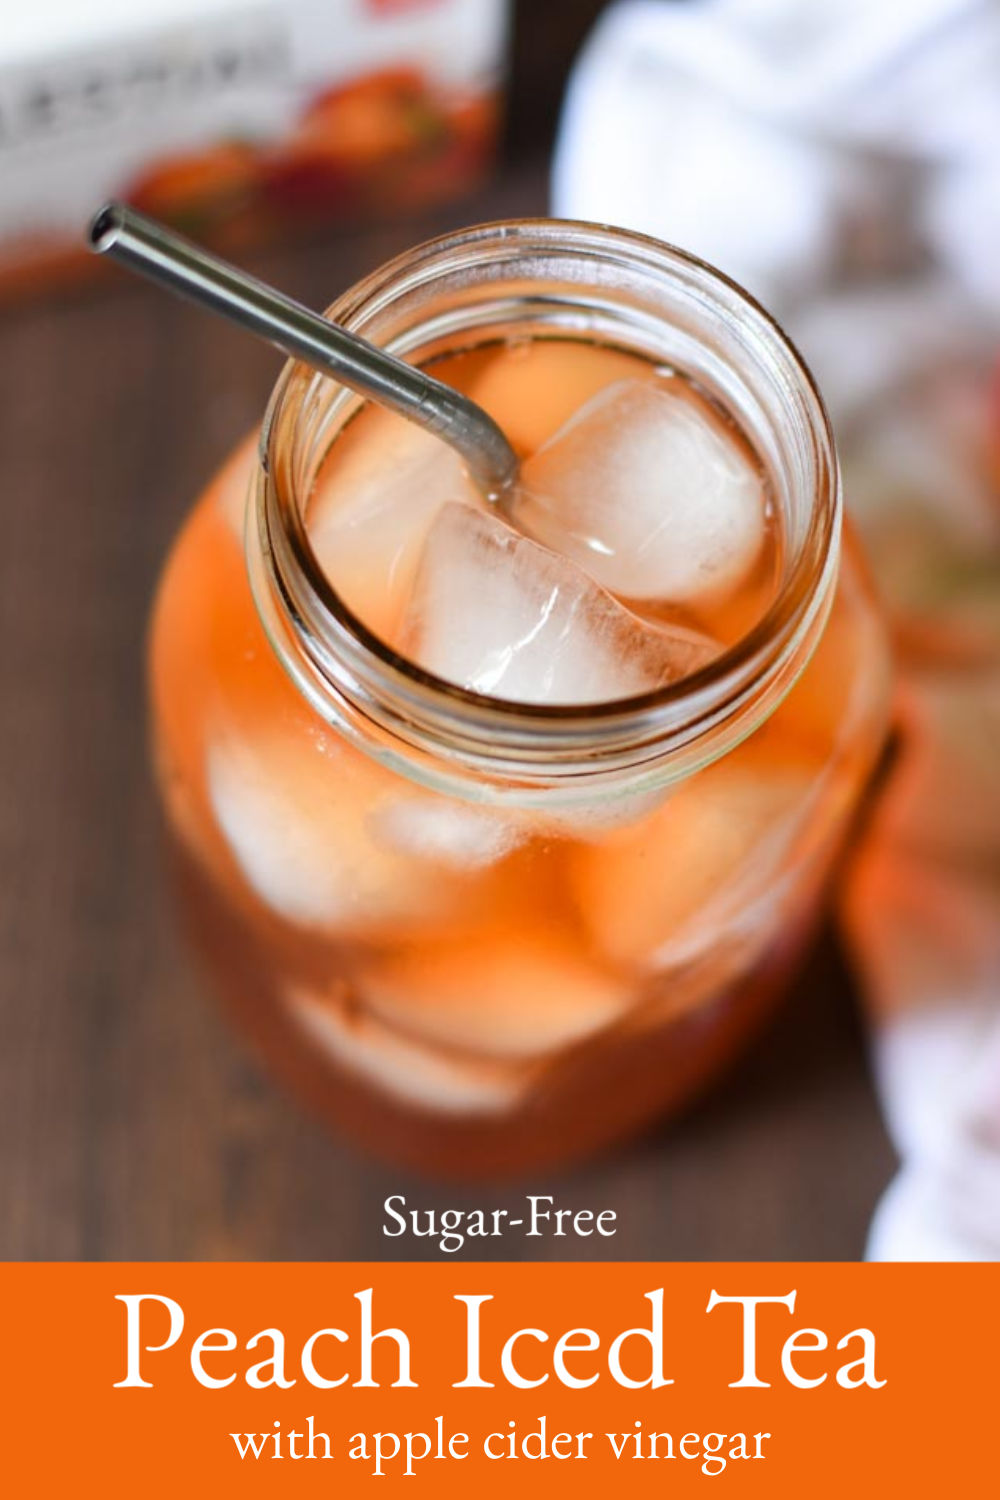 A quart jar filled with ice and peach tea.